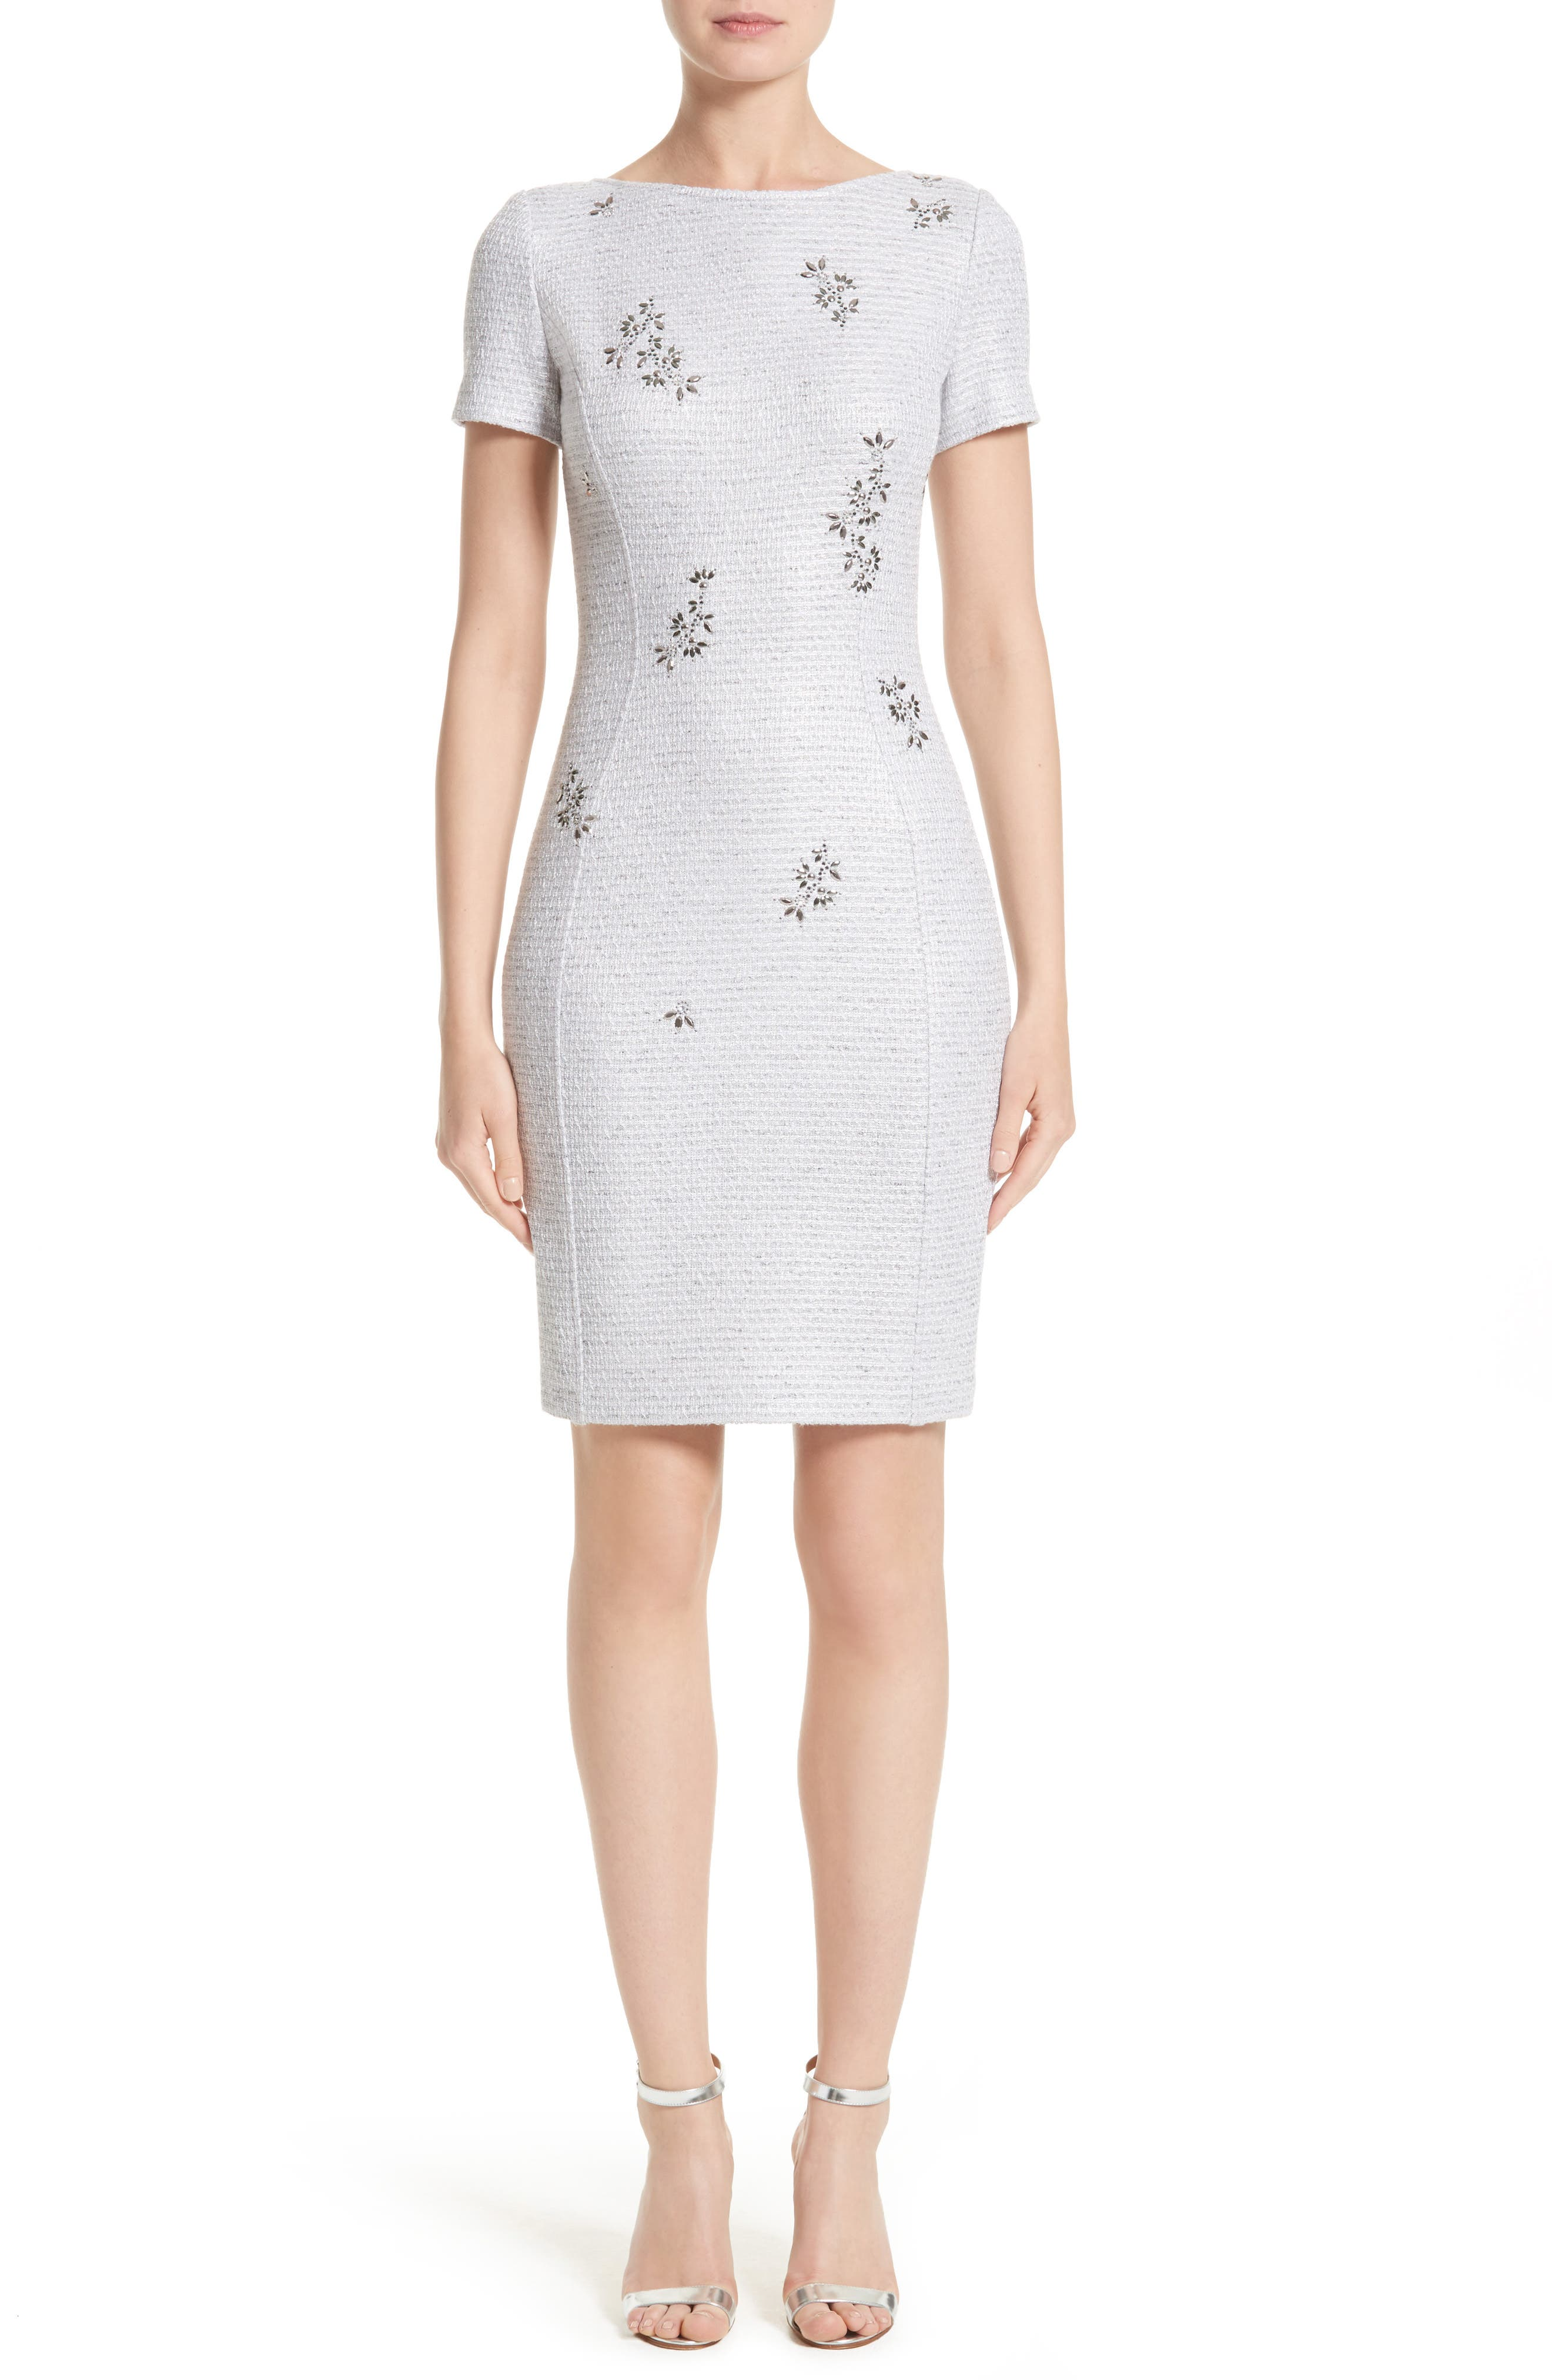 St. John Collection Embellished Shimmer Knit Dress